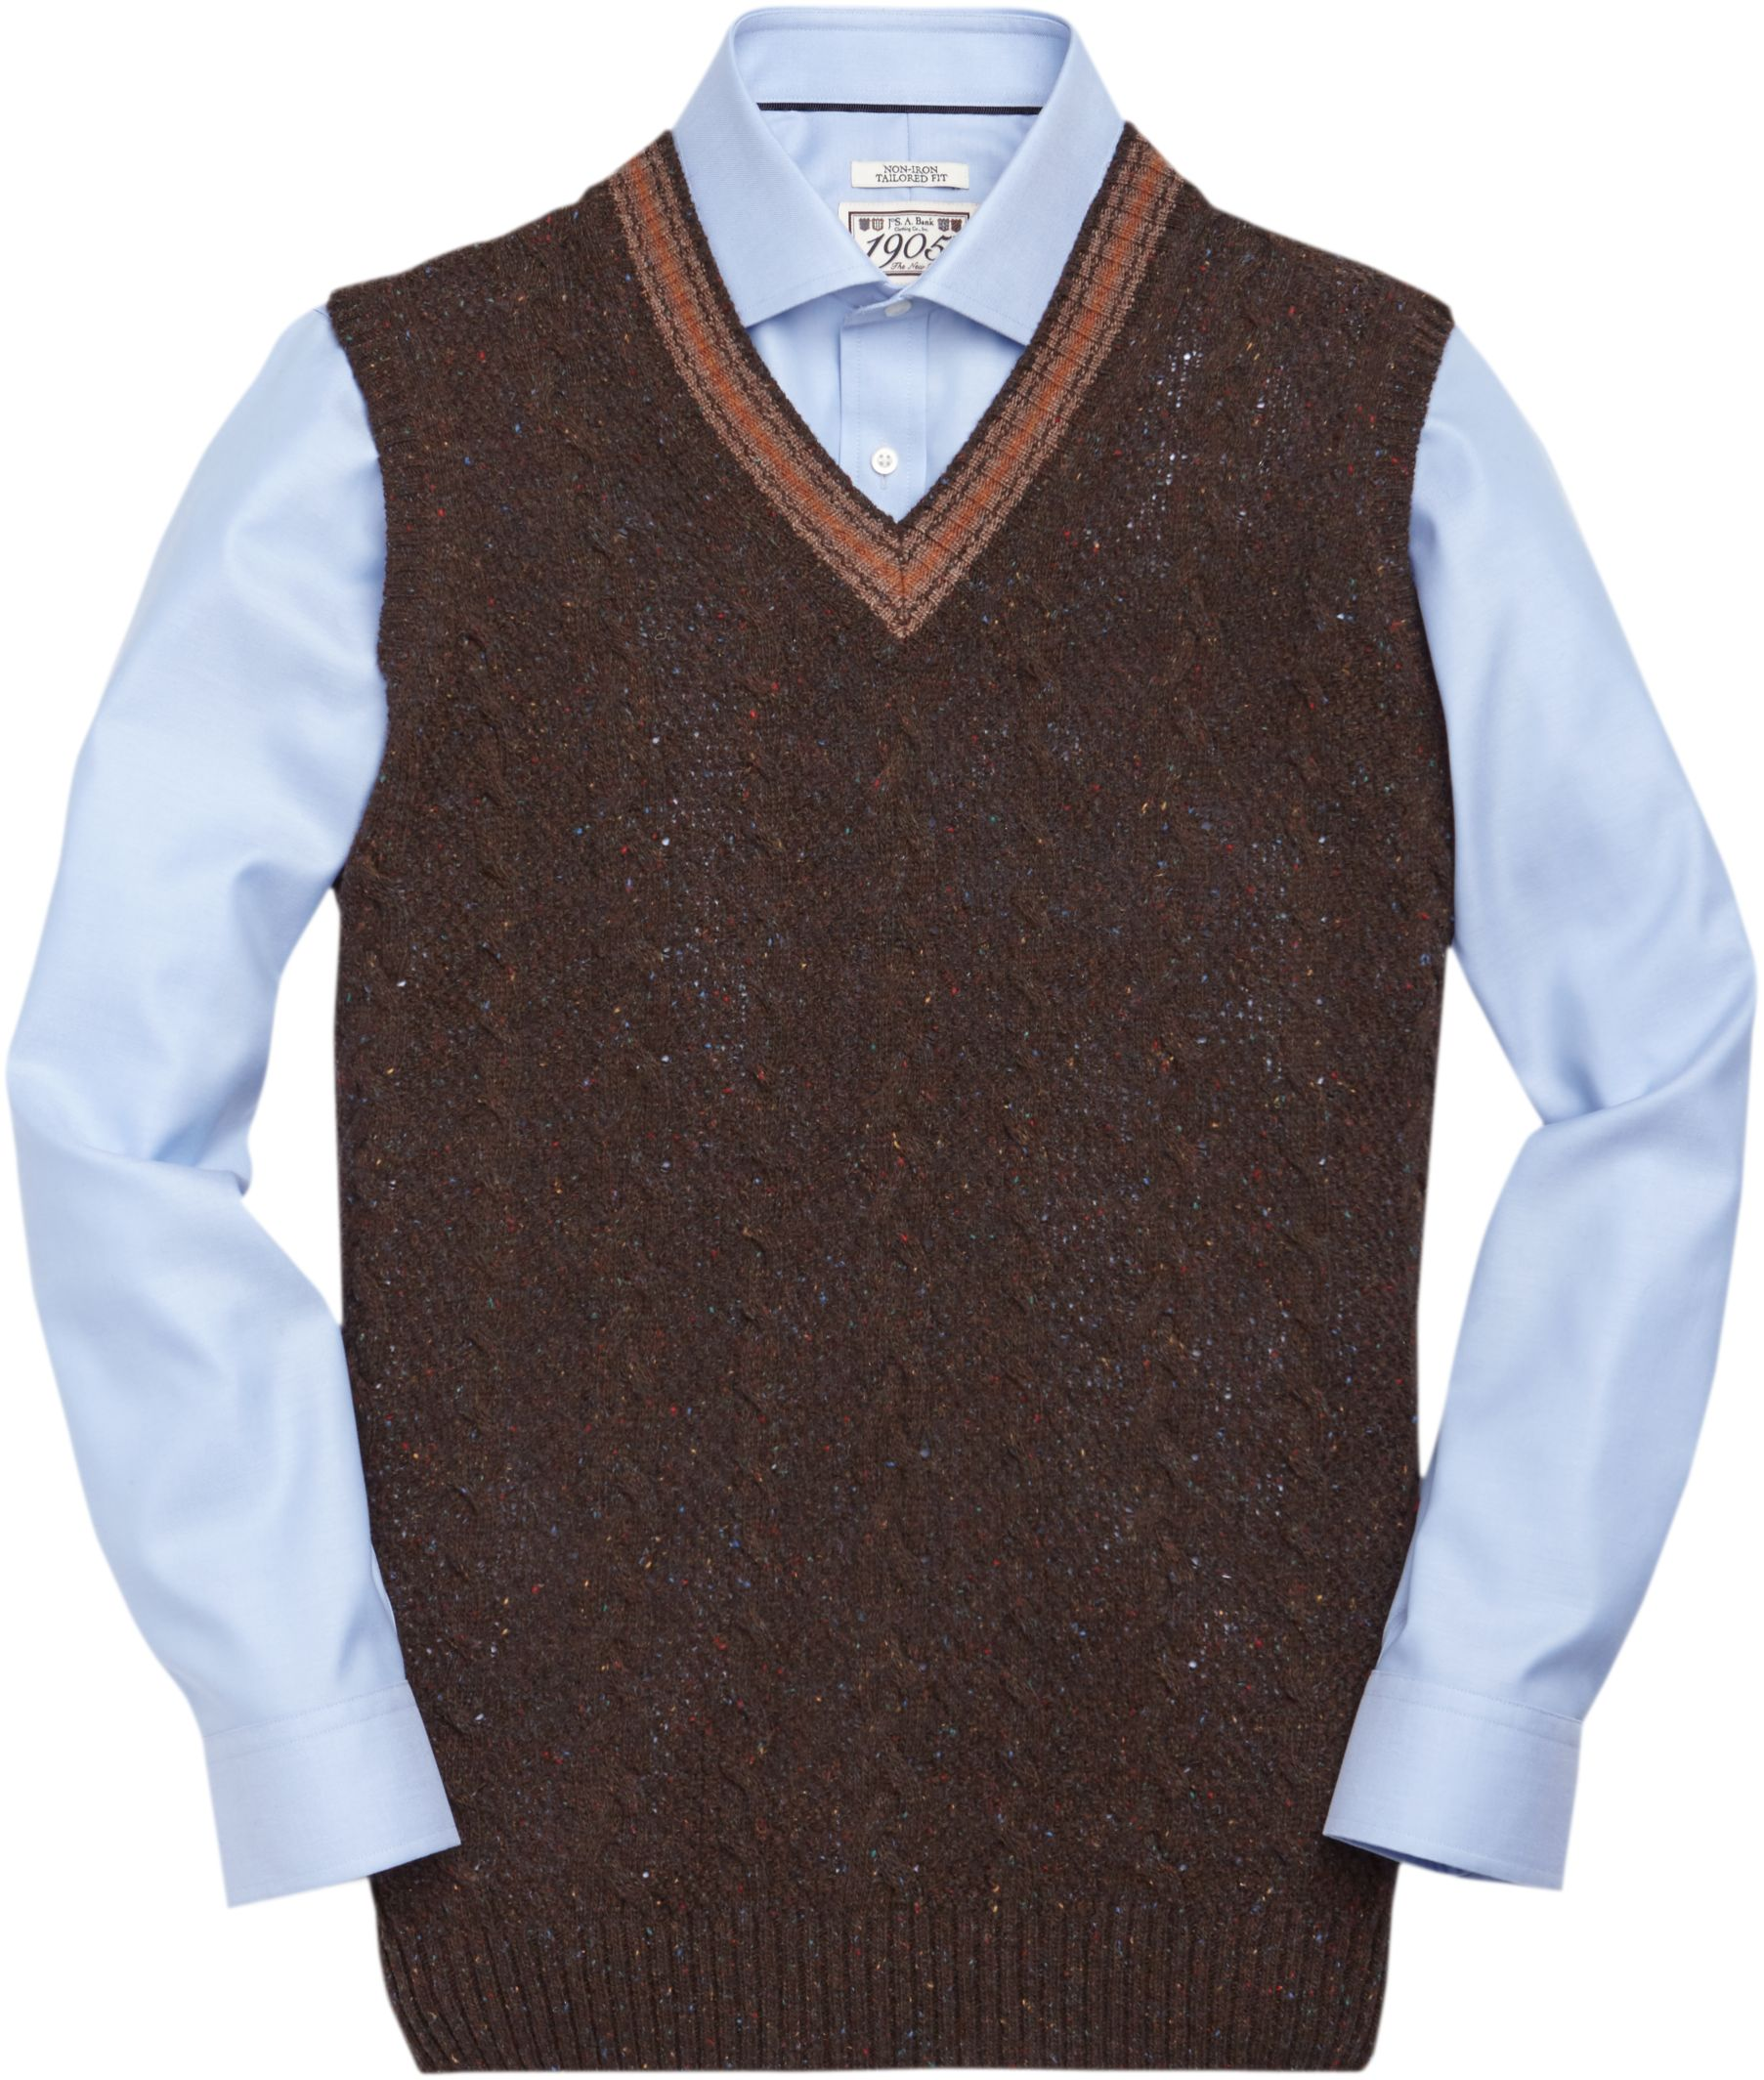 1e618217a95 1905 Collection Lambswool Sweater Vest - Big   Tall CLEARANCE - All ...